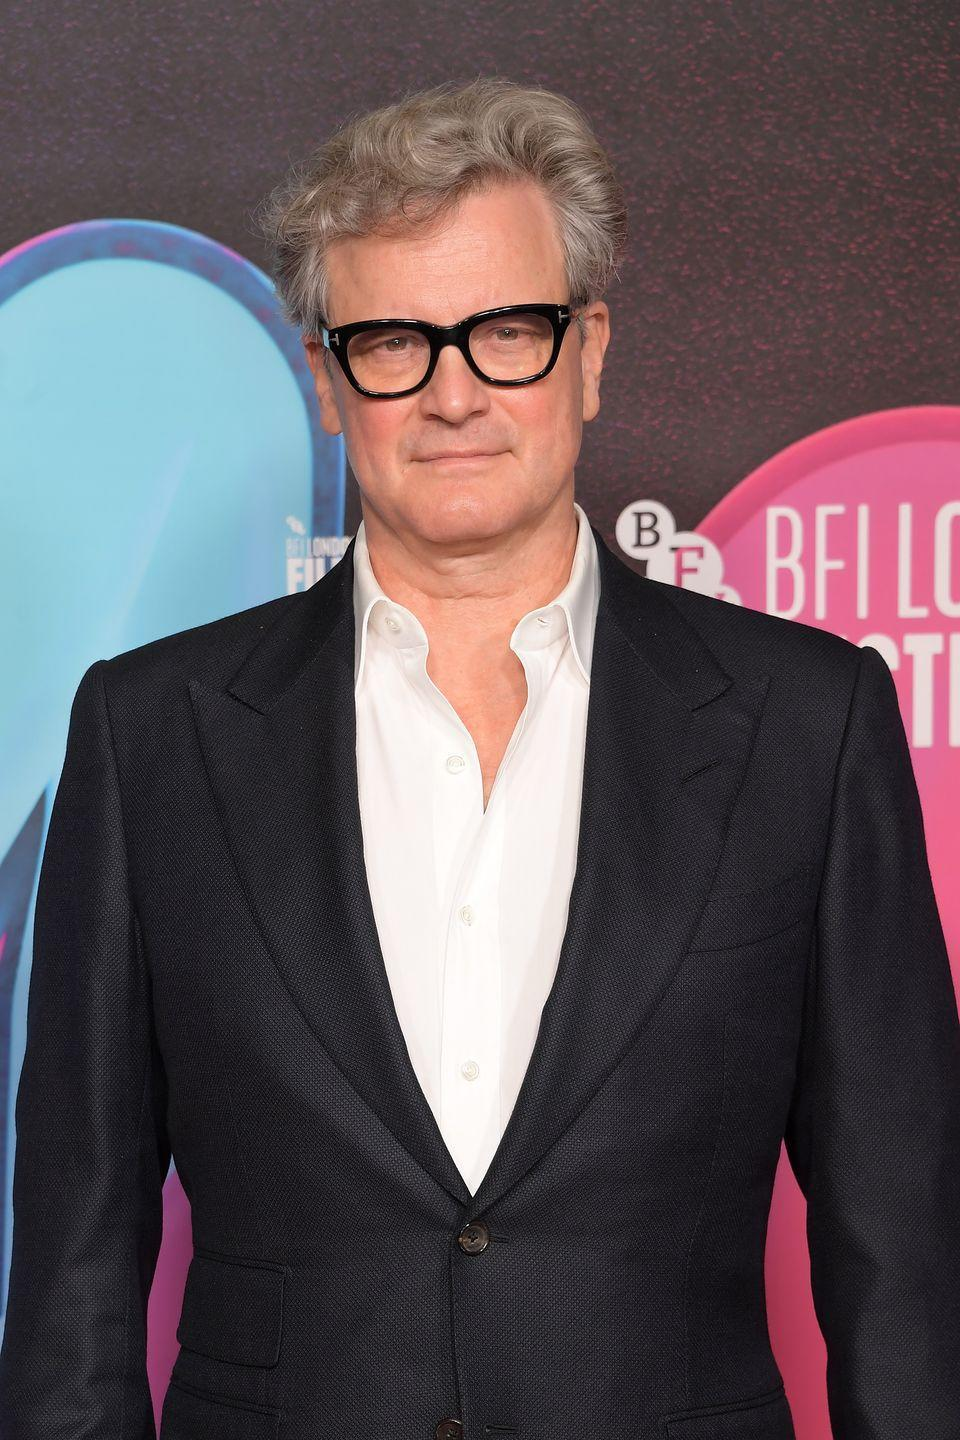 <p>Like his lead co-stars, Firth went on to receive plaudits for a range of impressive movies, from 2008's Mamma Mia to 2009's A Single Man and 2010's The King's Speech, for which he won the Best Actor Oscar. As well as The Kingsman movies, he also recently appeared in 1917 with Richard Madden and Mark Strong.</p>